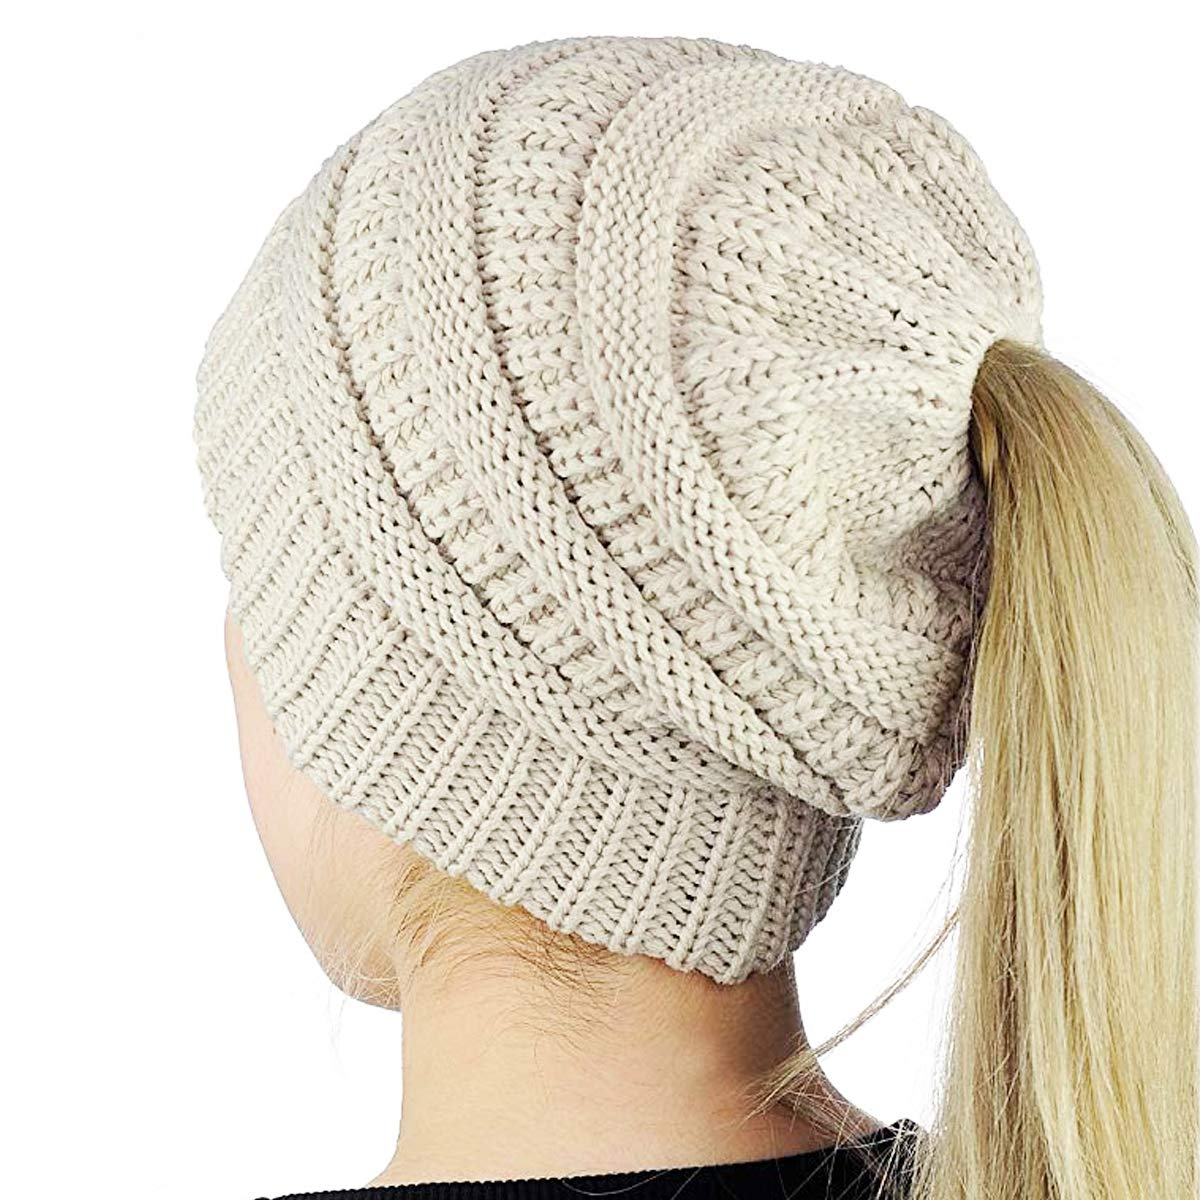 A-Rainbow Beige Winter Cable Knit Ponytail Beanie Soft Stretch Messy High Bun Hat Cap for Women